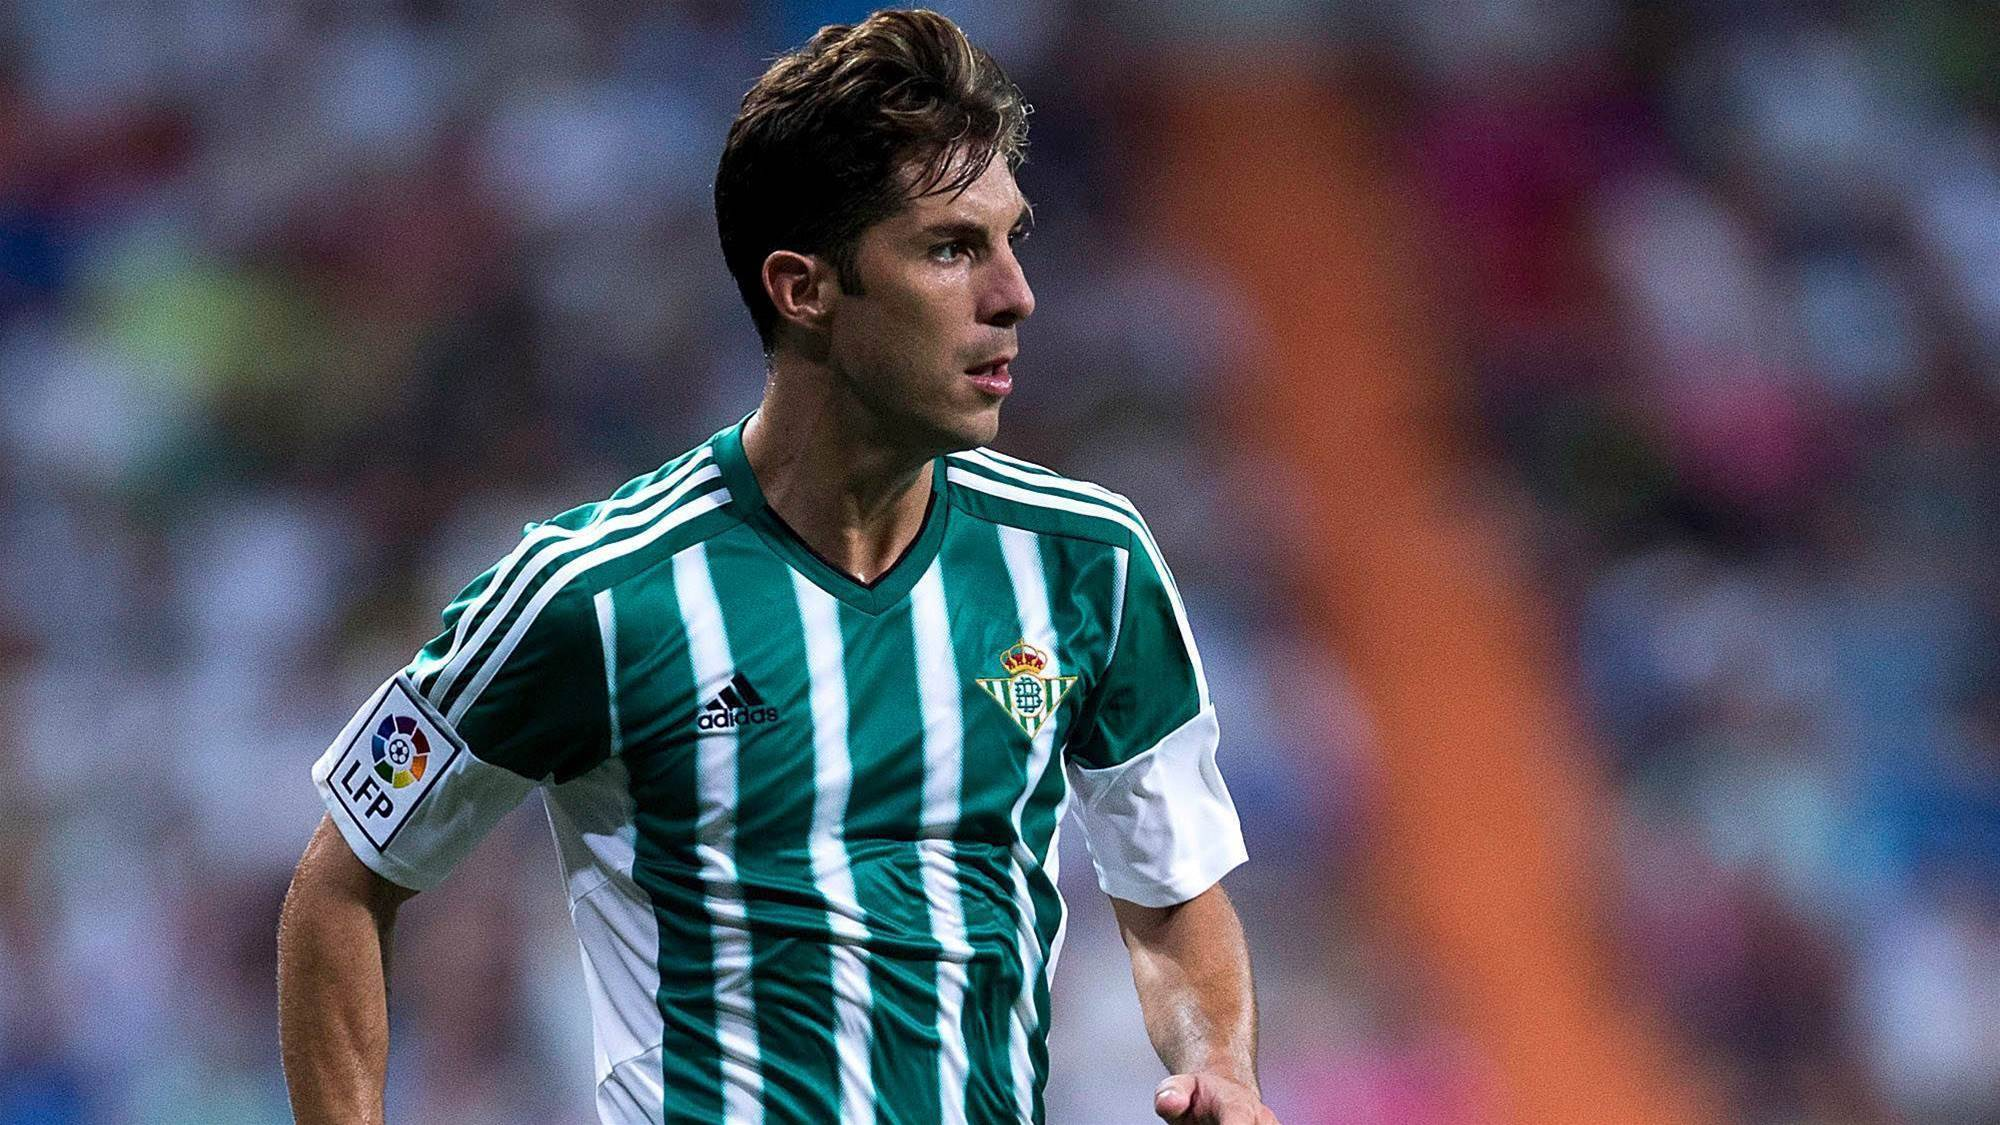 Wanderers sign Spanish winger Alvaro Cejudo